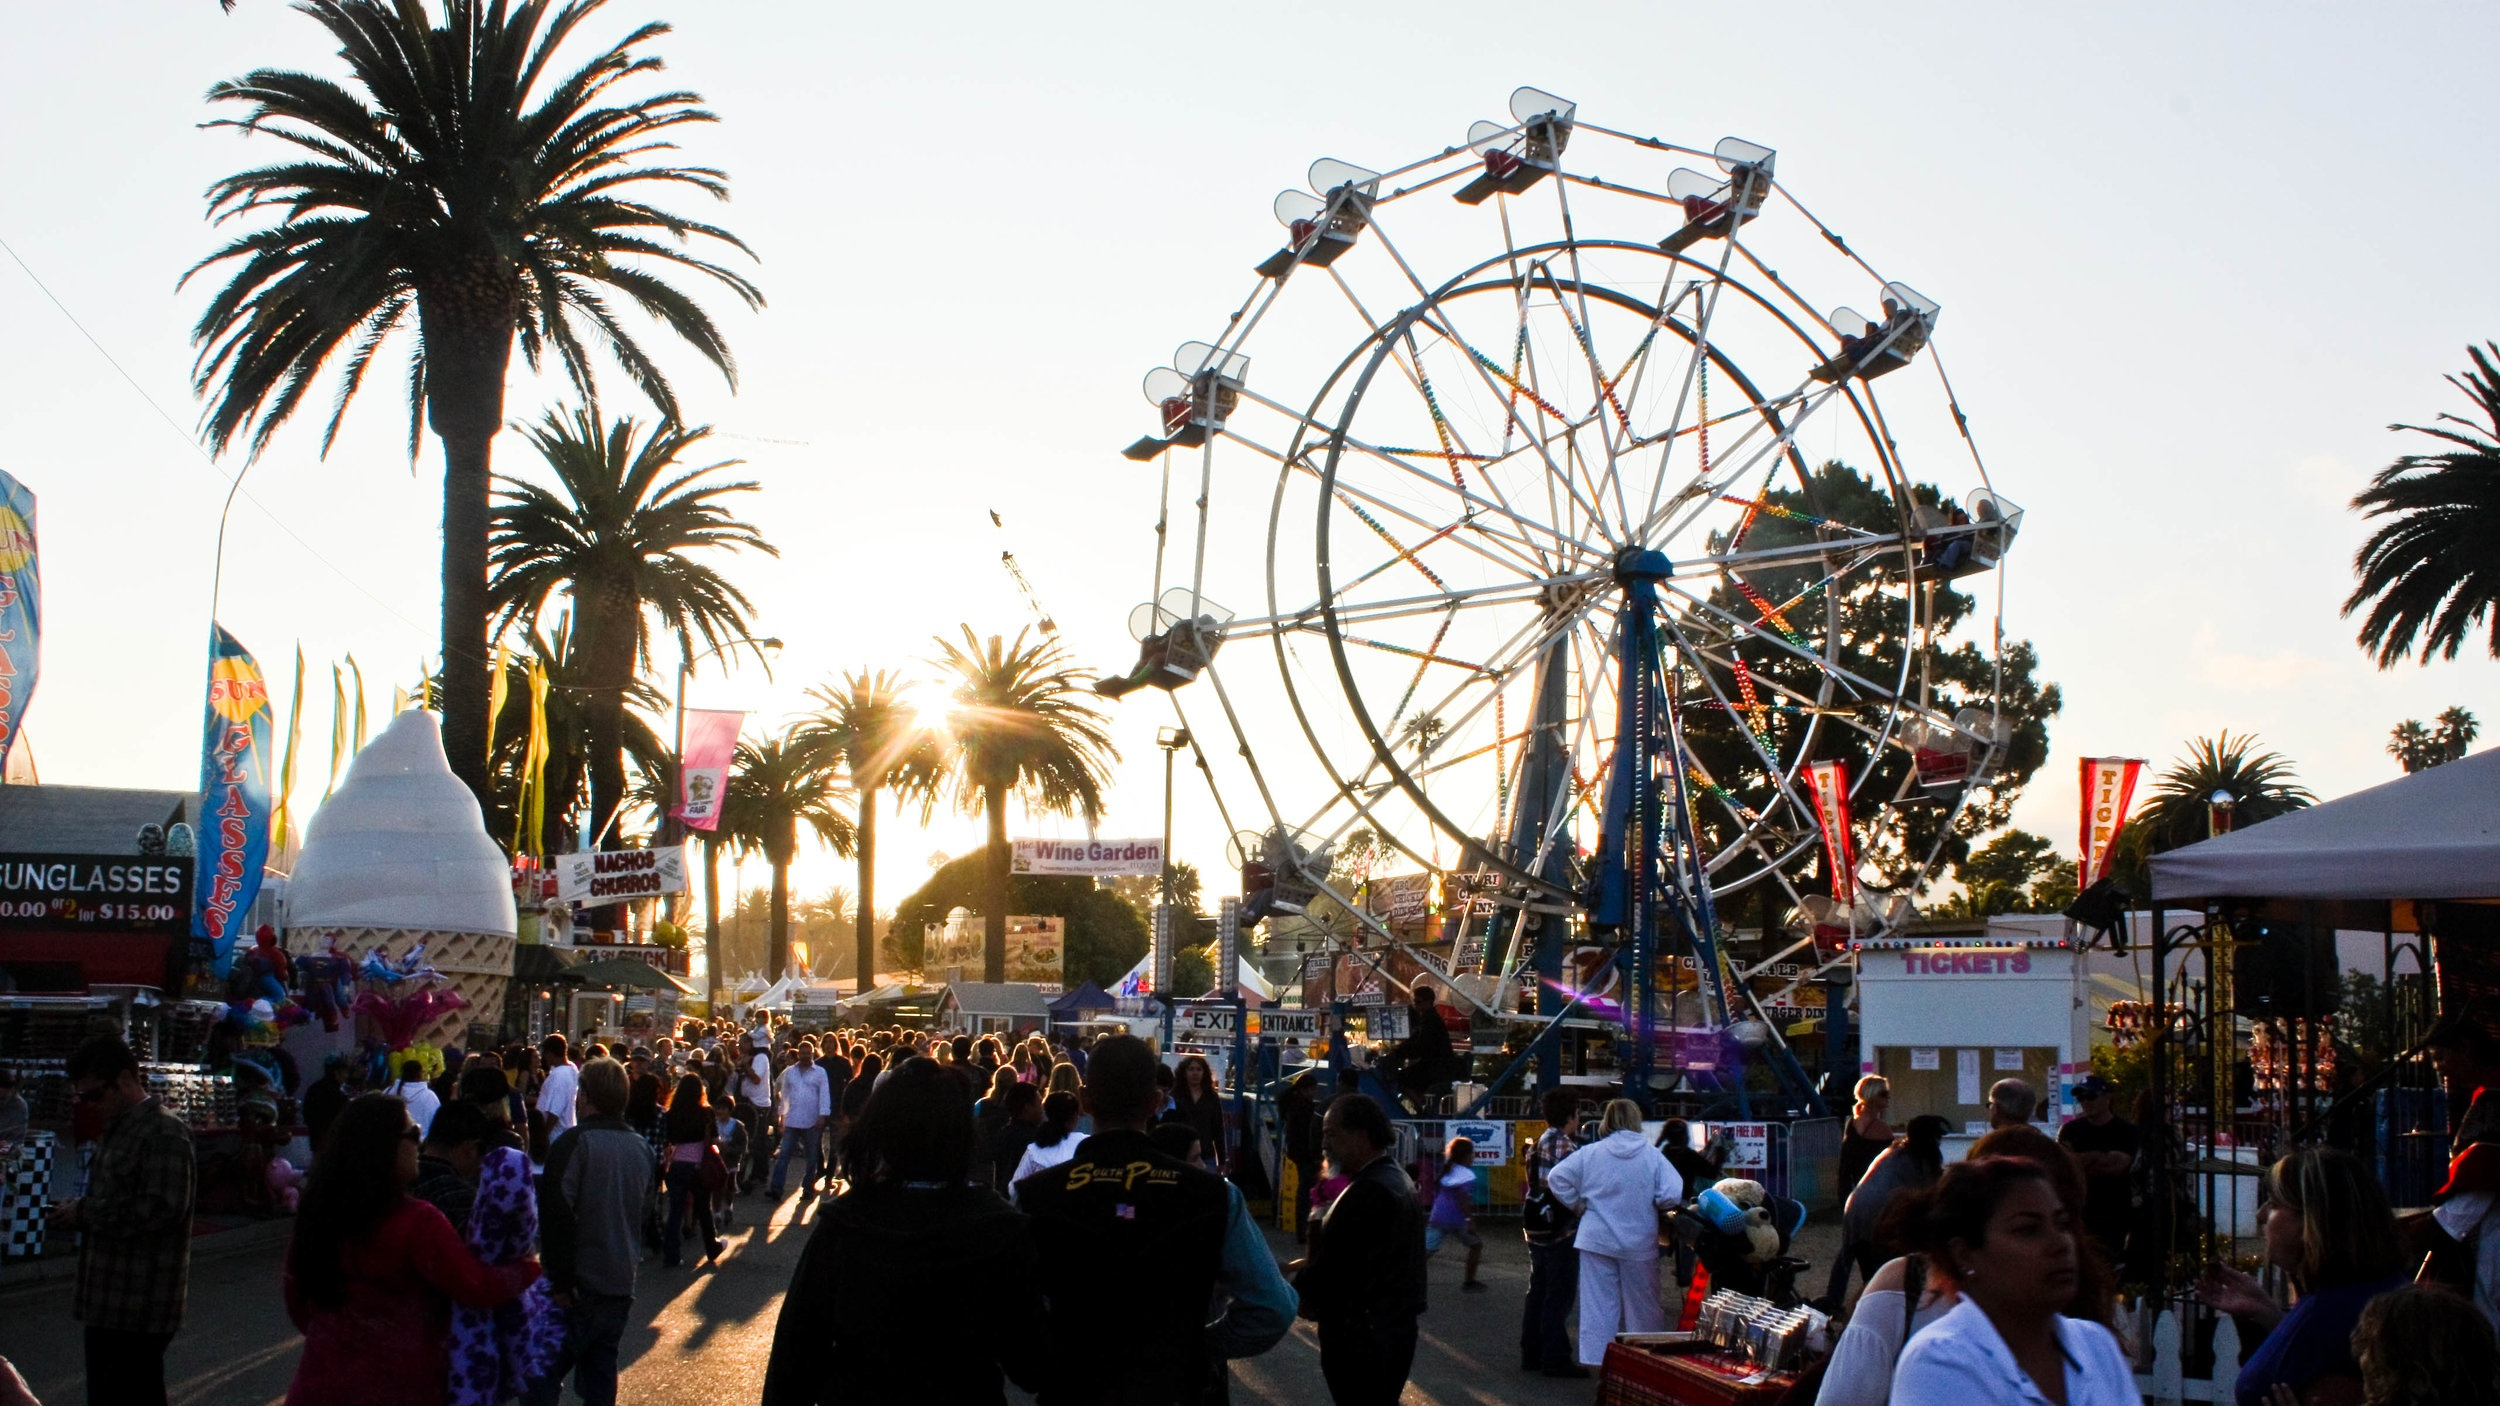 ventura-county-fairgrounds-at-seaside-park-41.jpg